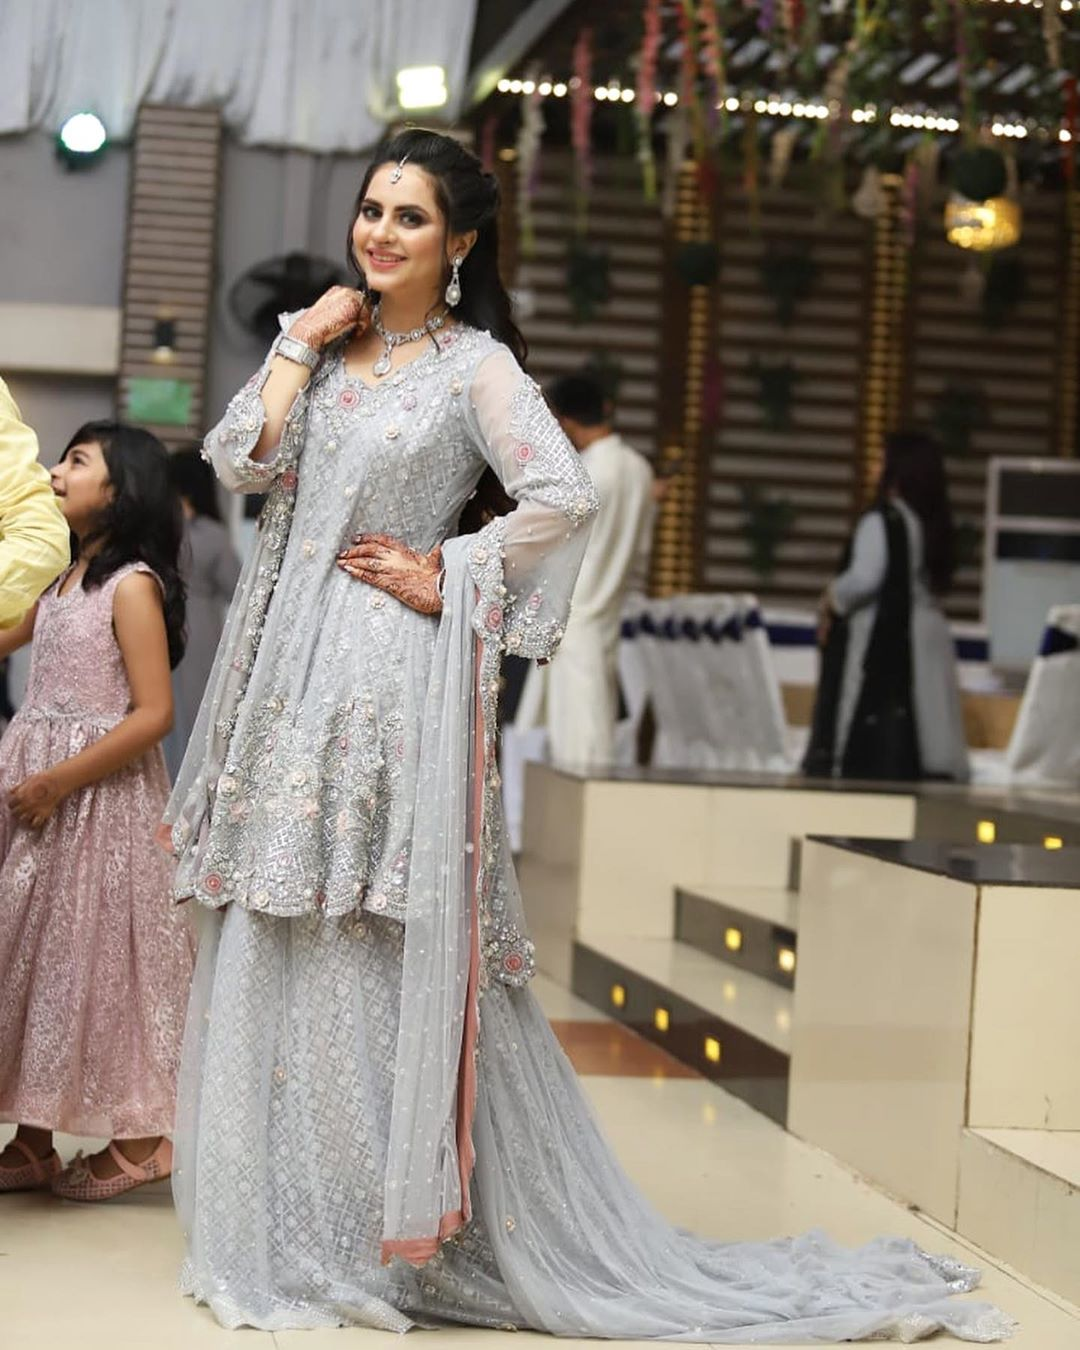 Fatima Effendi Kanwar Arsalan Spotted at recent wedding event 1